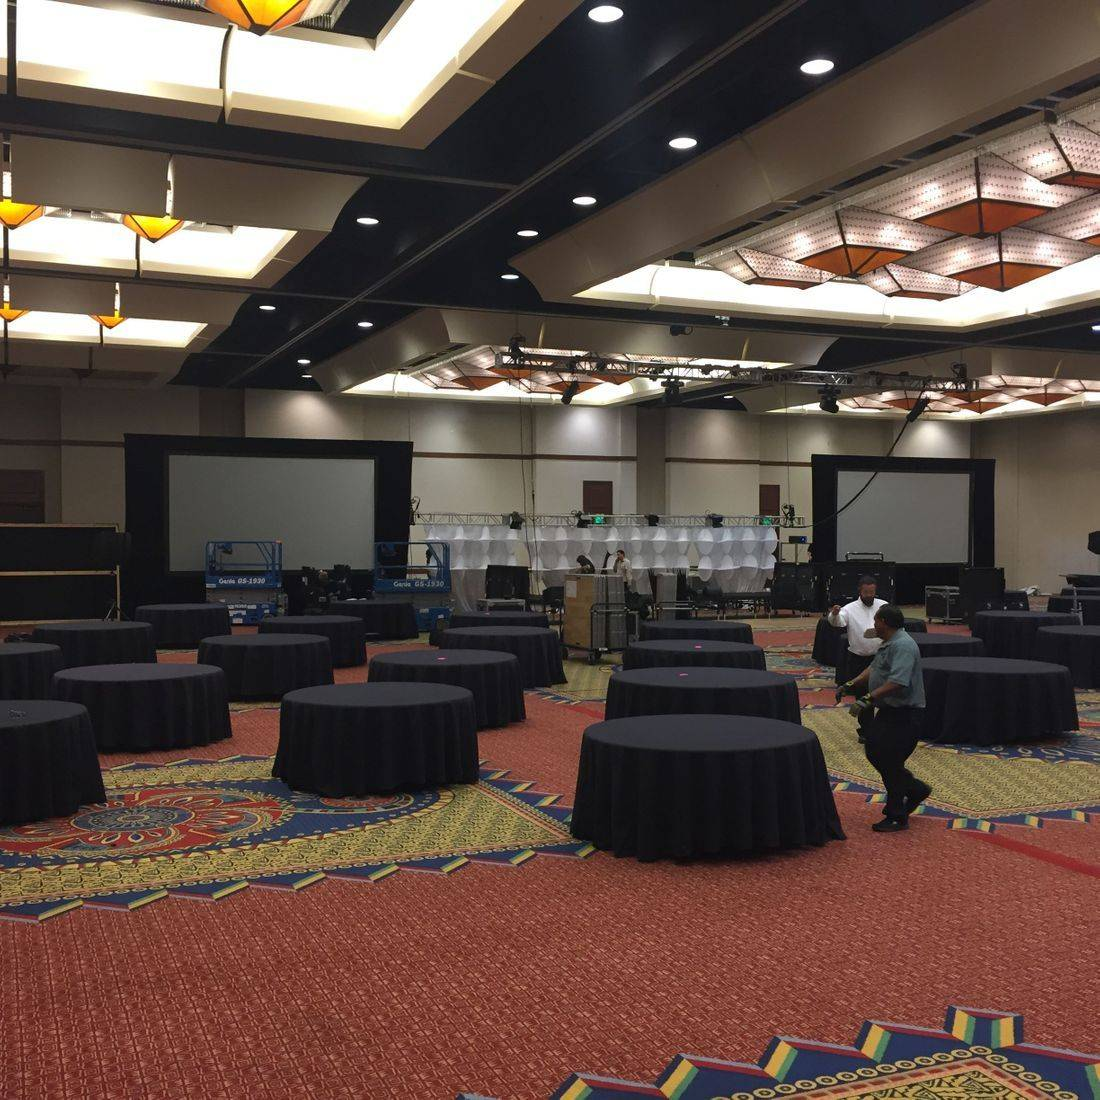 #Phoenix event labor, #Audio Visual, #AV Labor, #Phoenix, #Staging, #Phoenix #Stagehands